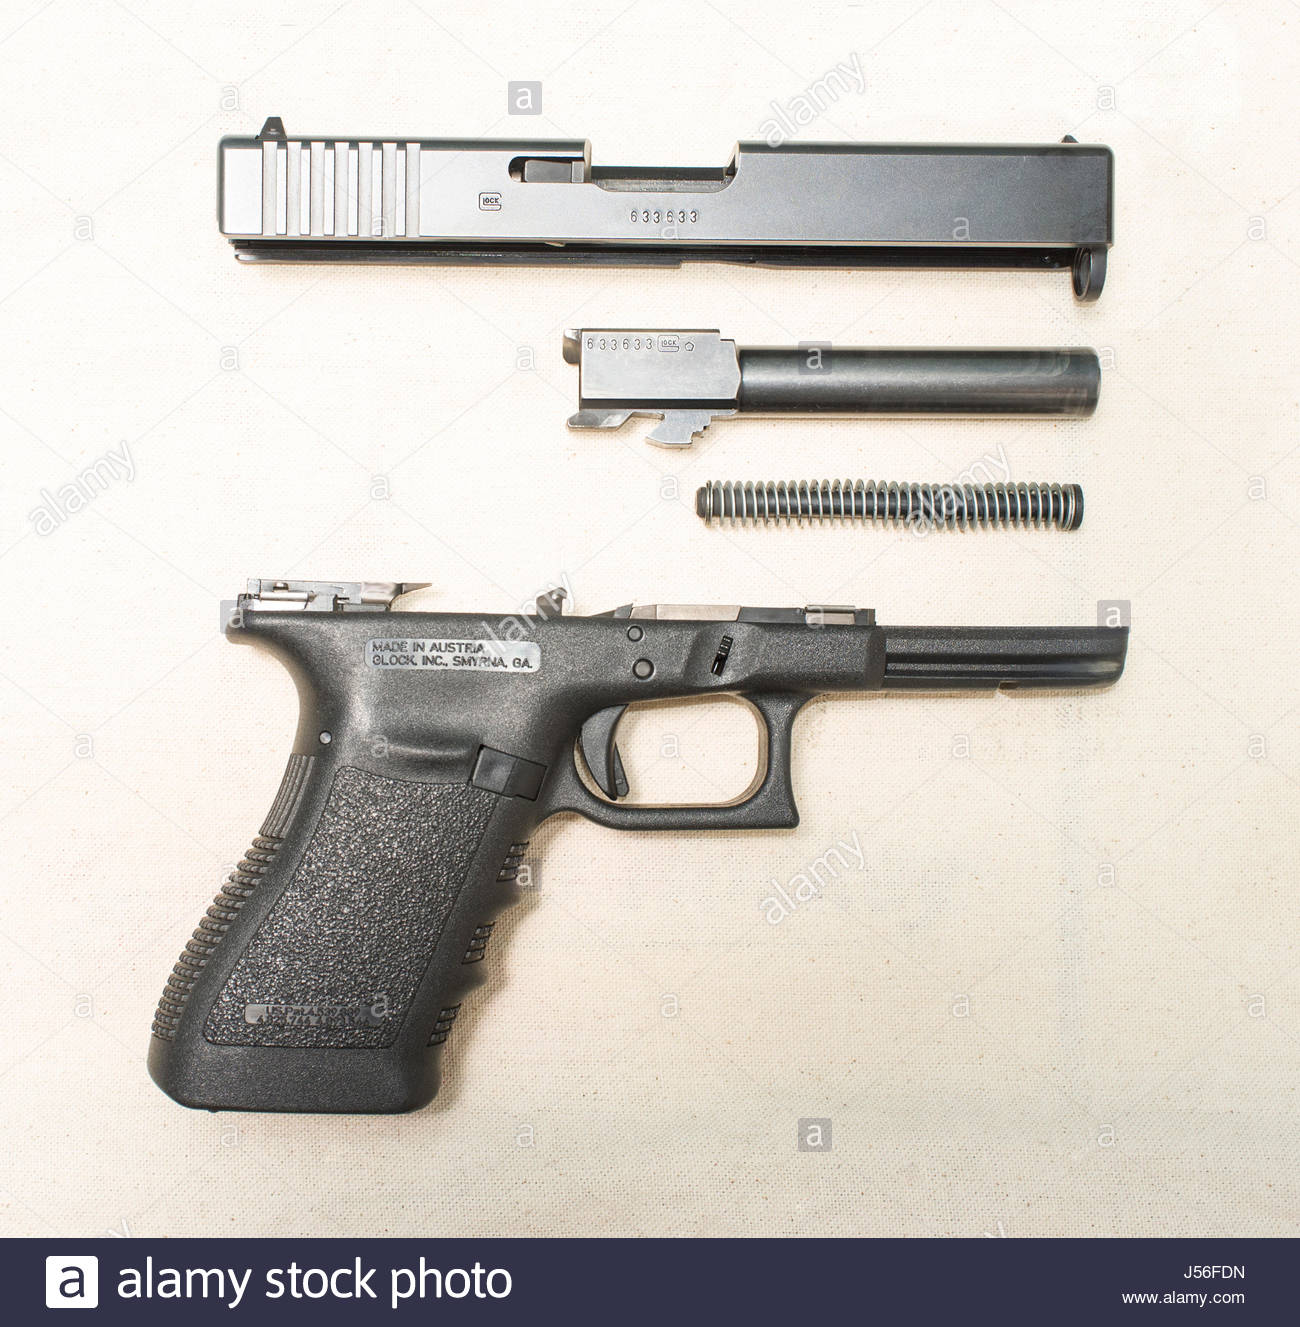 Parts of a disassembled Glock 21 semi auto pistol in  45 ACP caliber